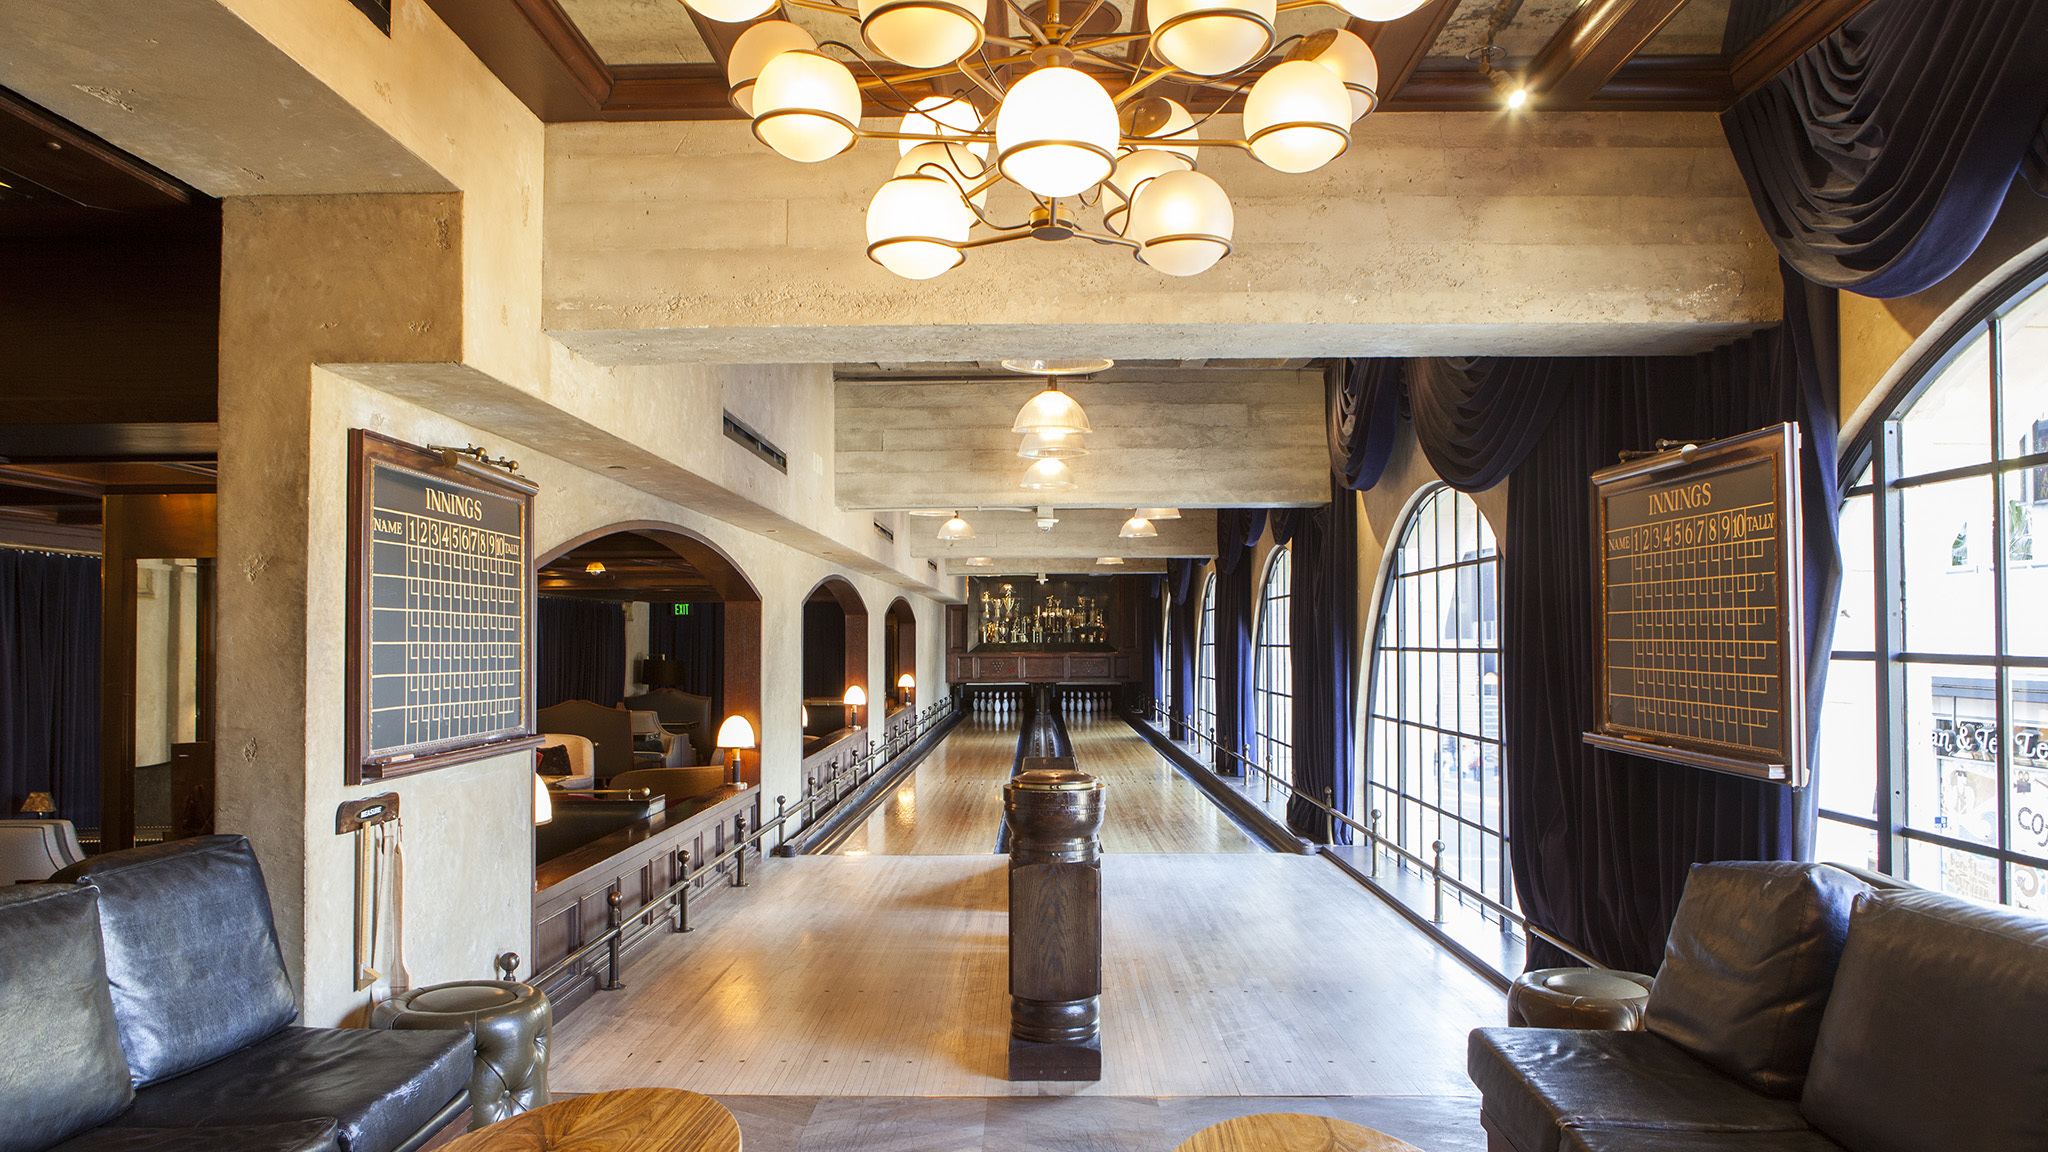 569dde414b39 L.A.'s Best Hotel Bars and Classiest Lobby Lounges